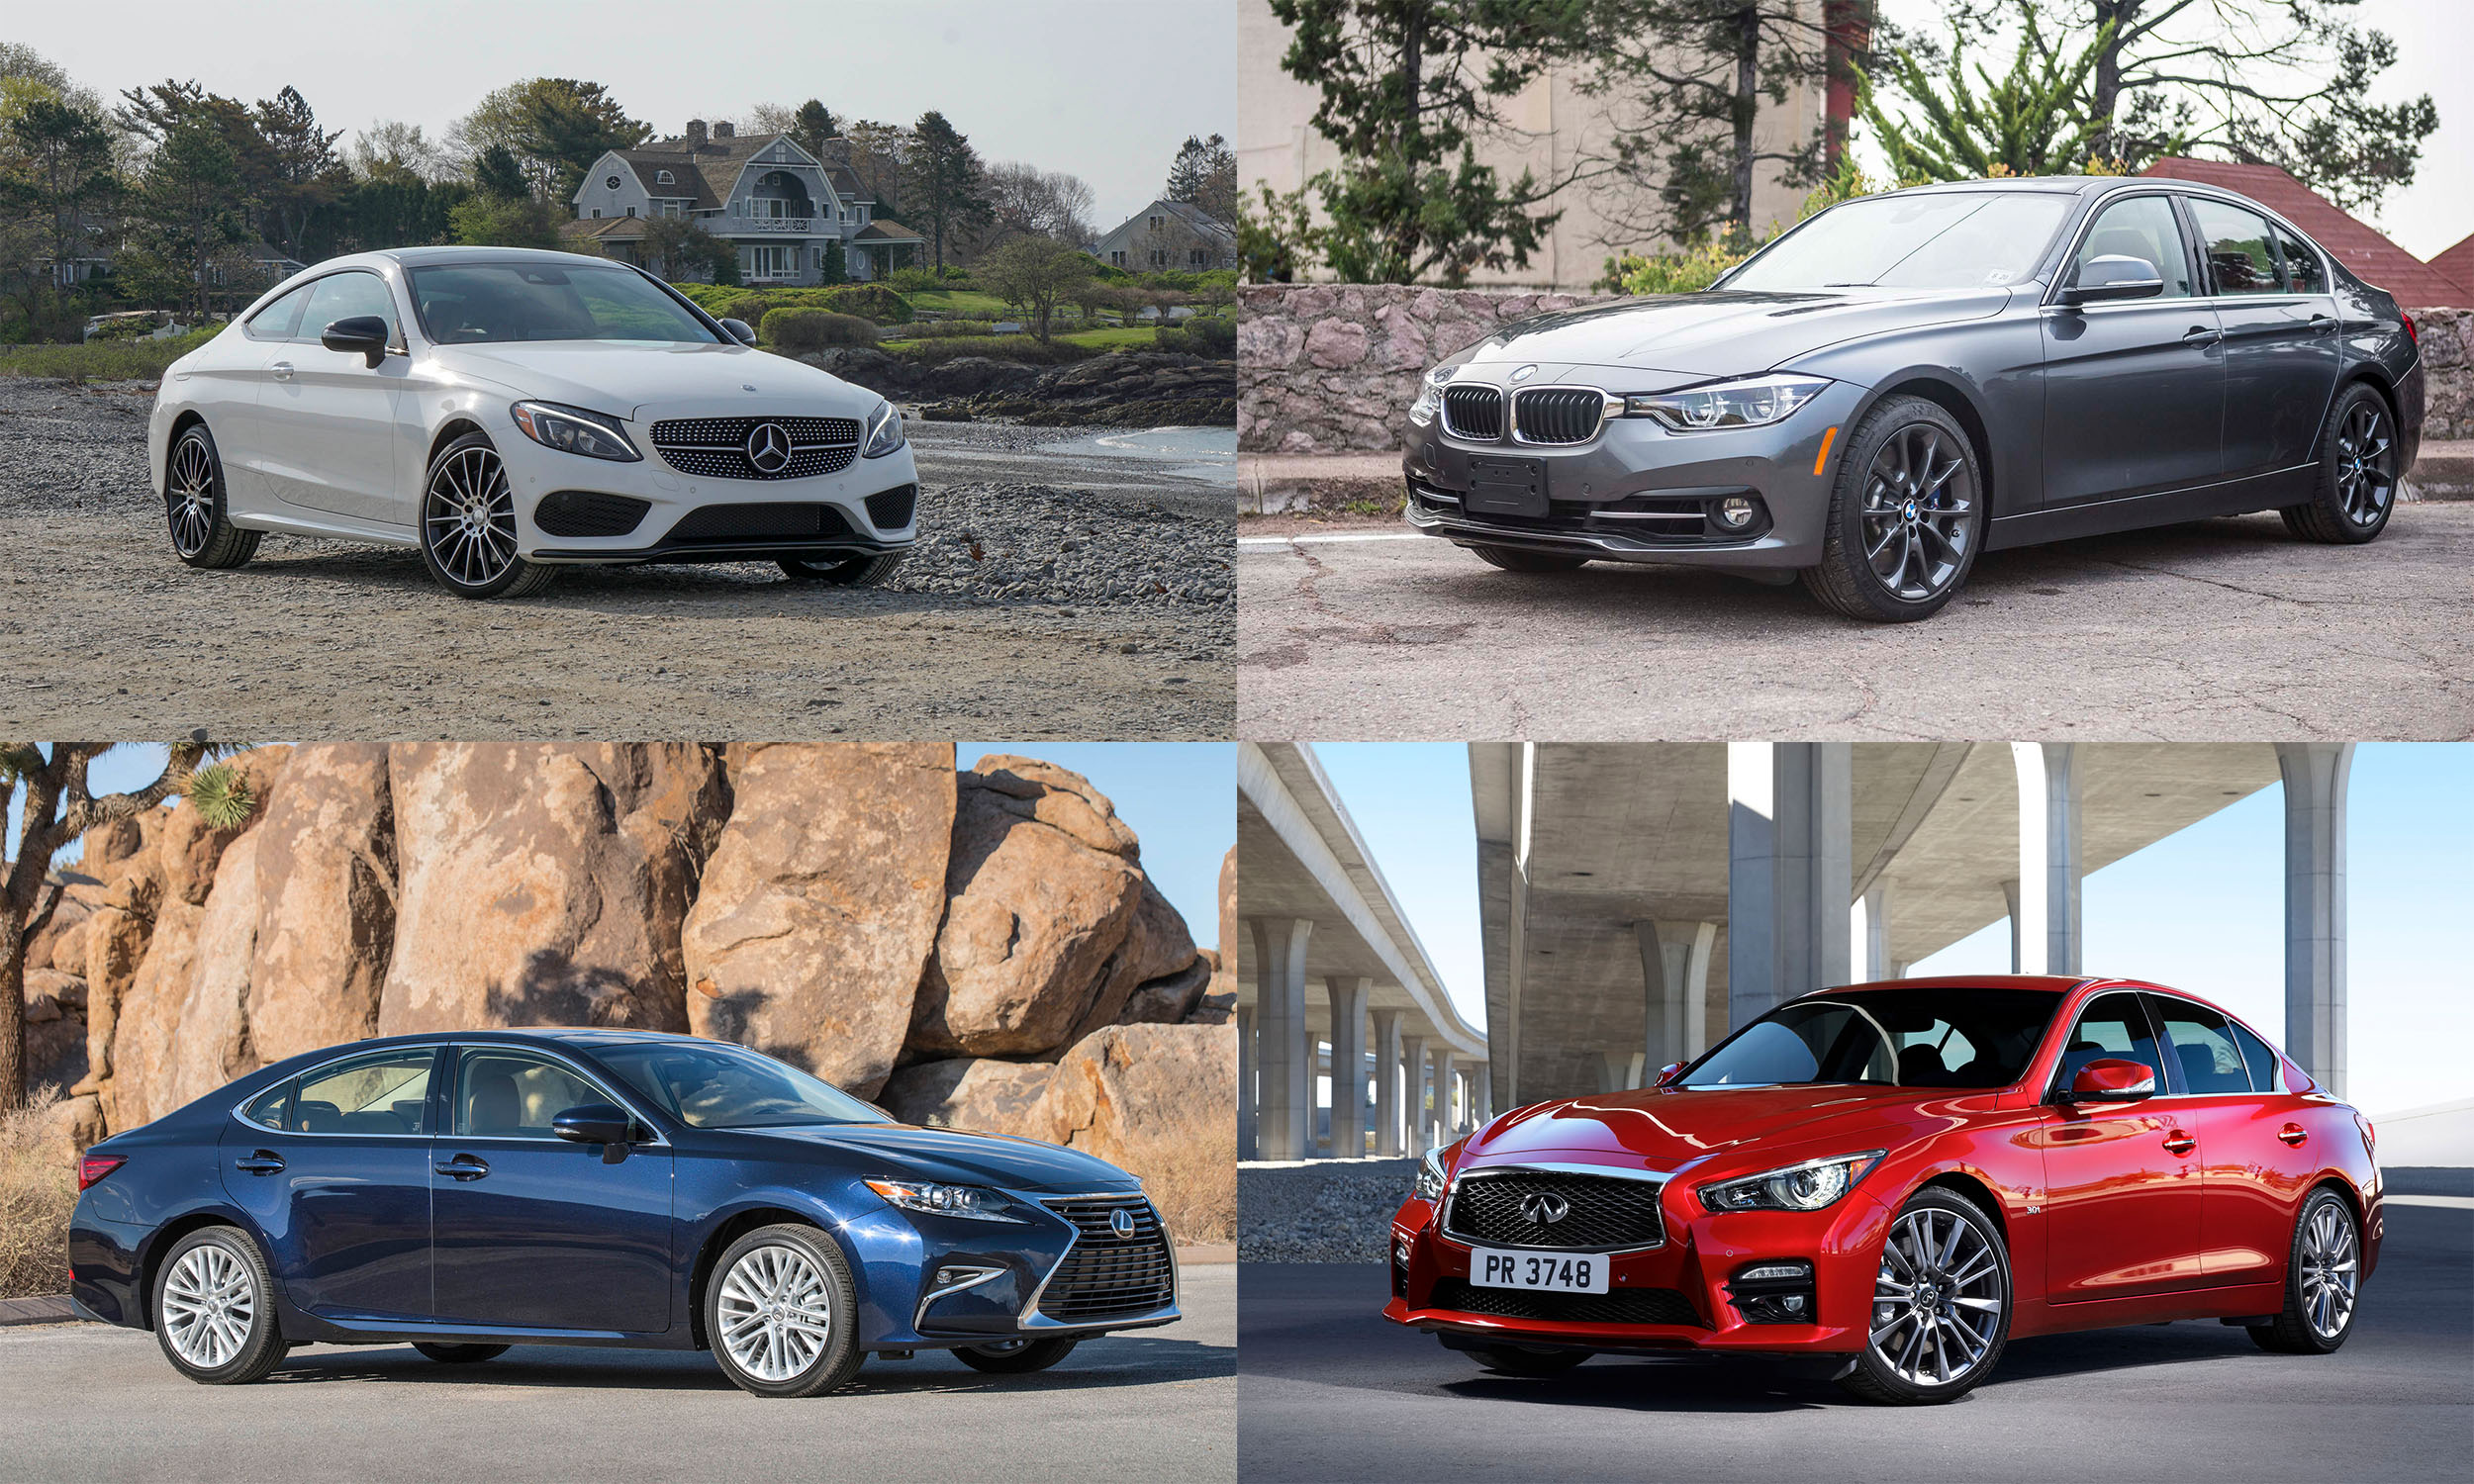 List Best Selling Luxury Cars In America: Drop-Tops For Hot Spots: Convertibles For Summer Driving